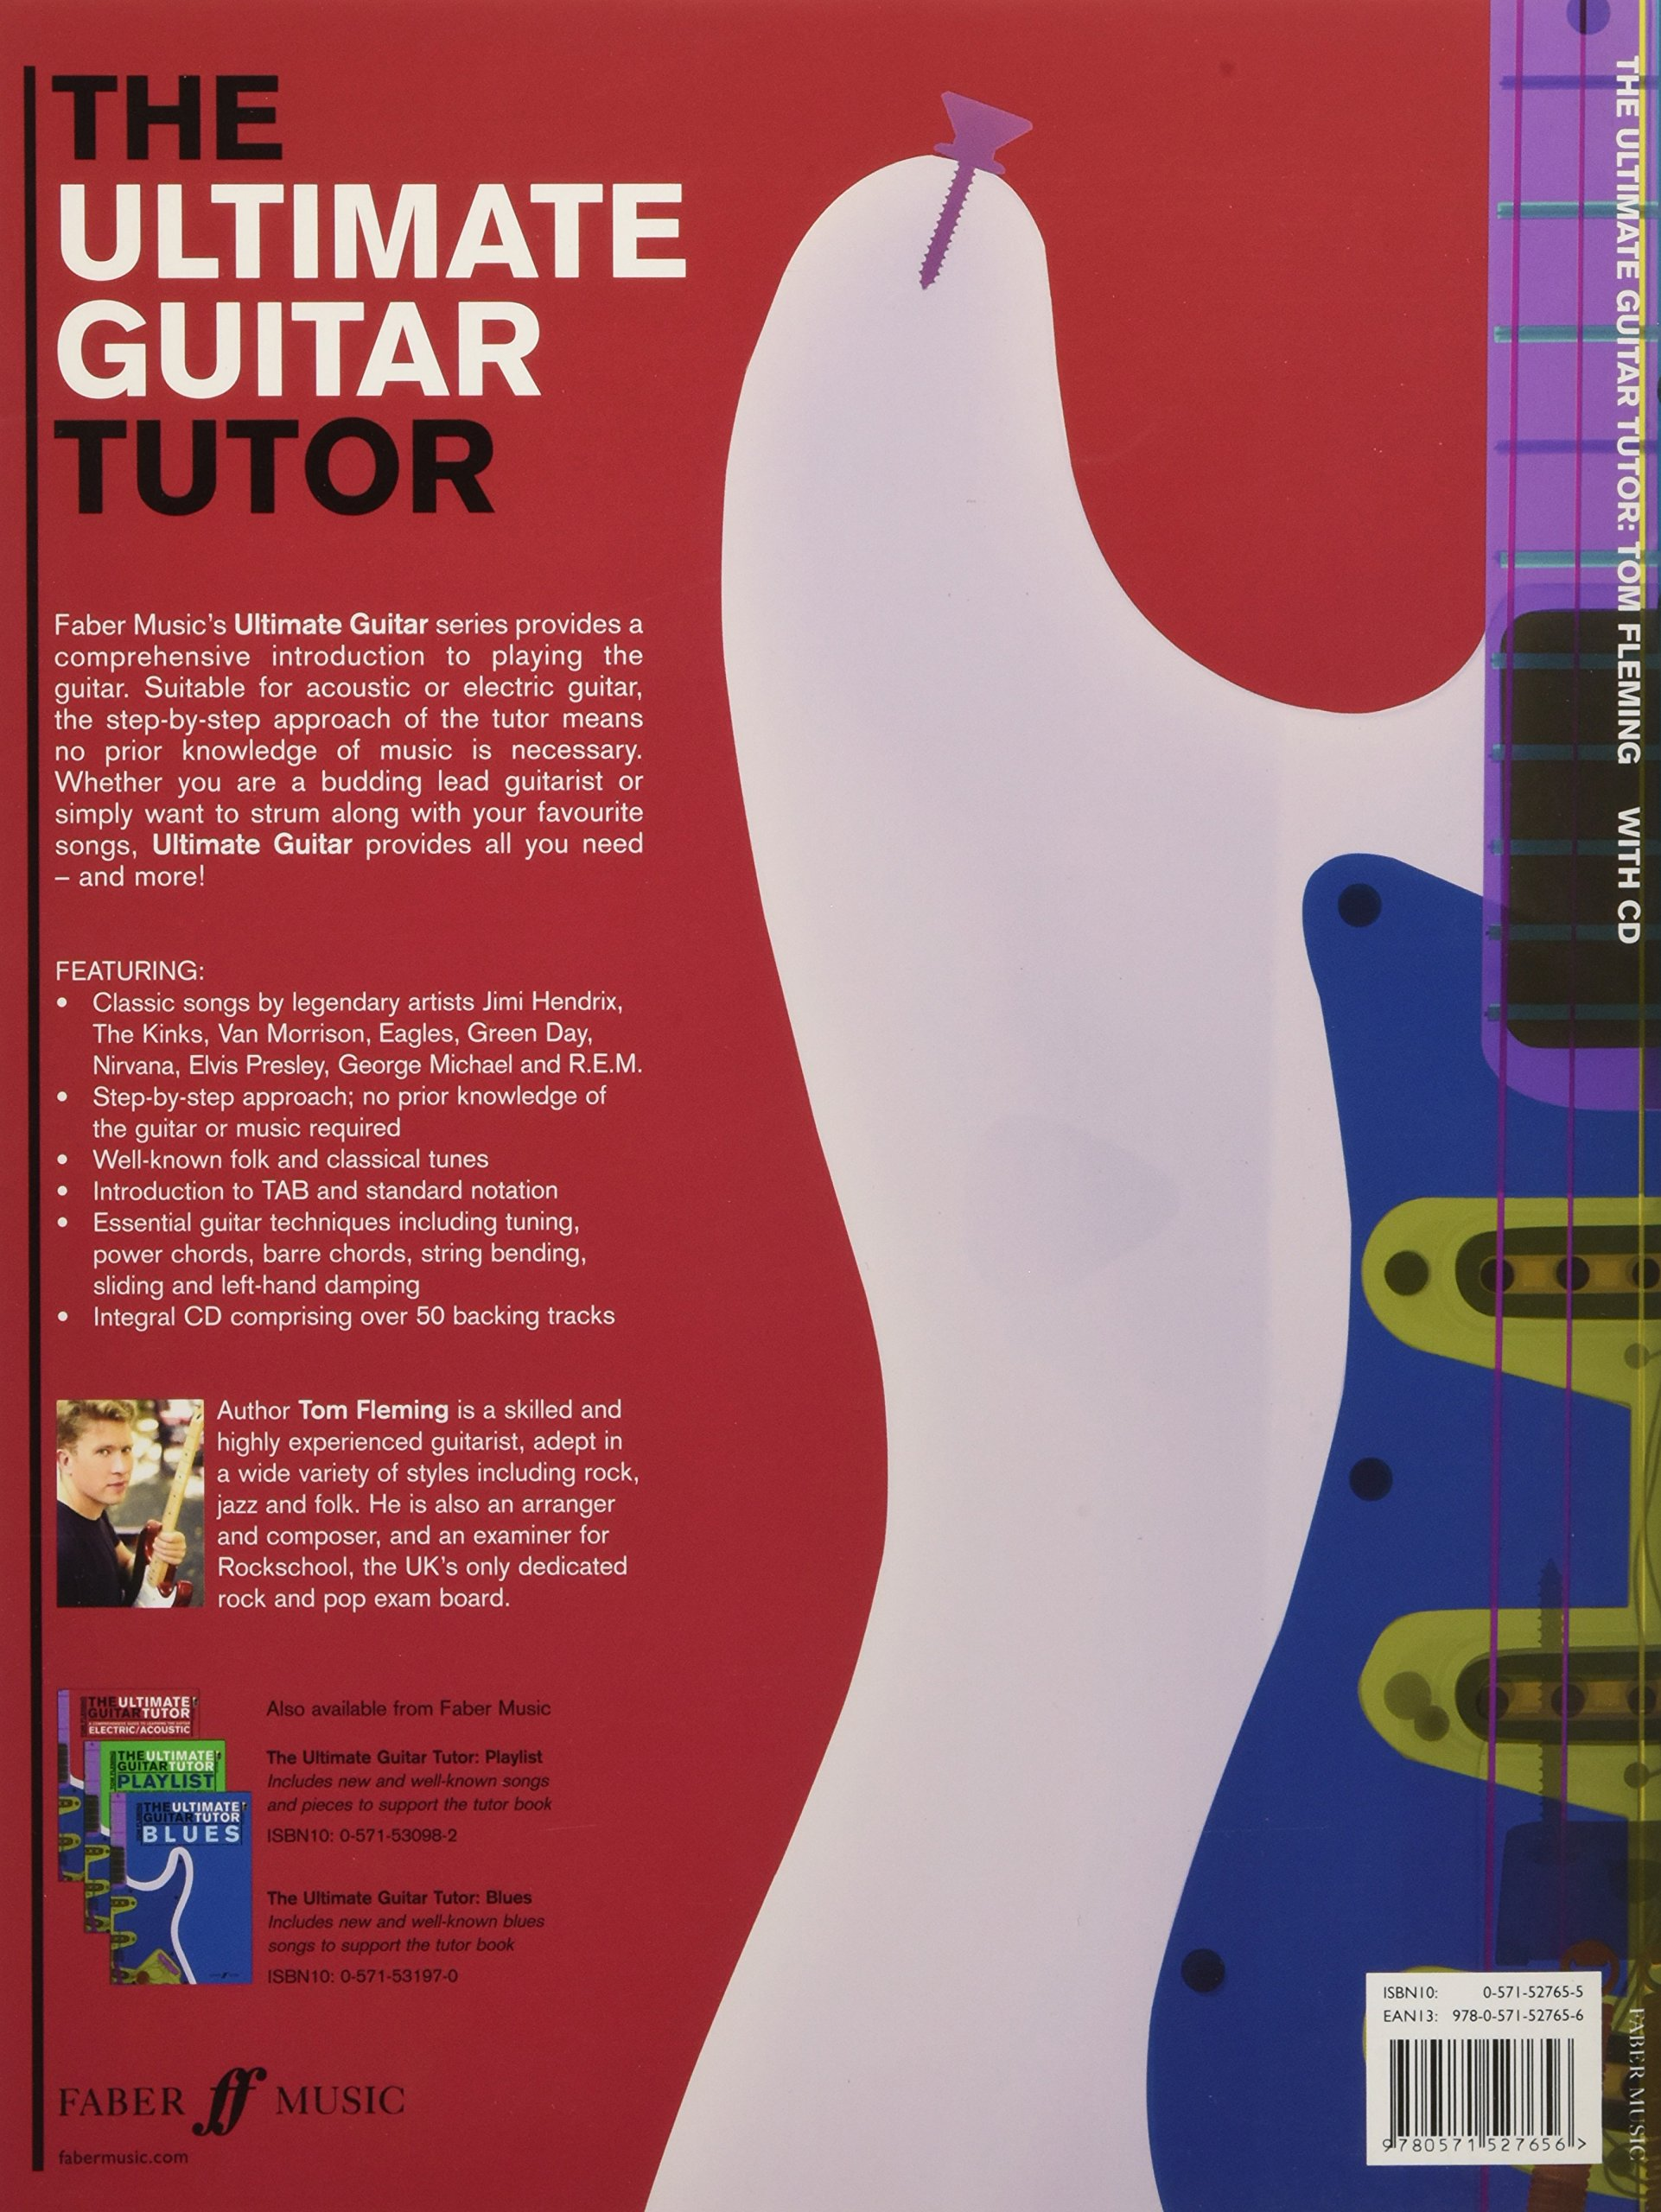 The Ultimate Guitar Tutor A Comprehensive Guide To Learning The